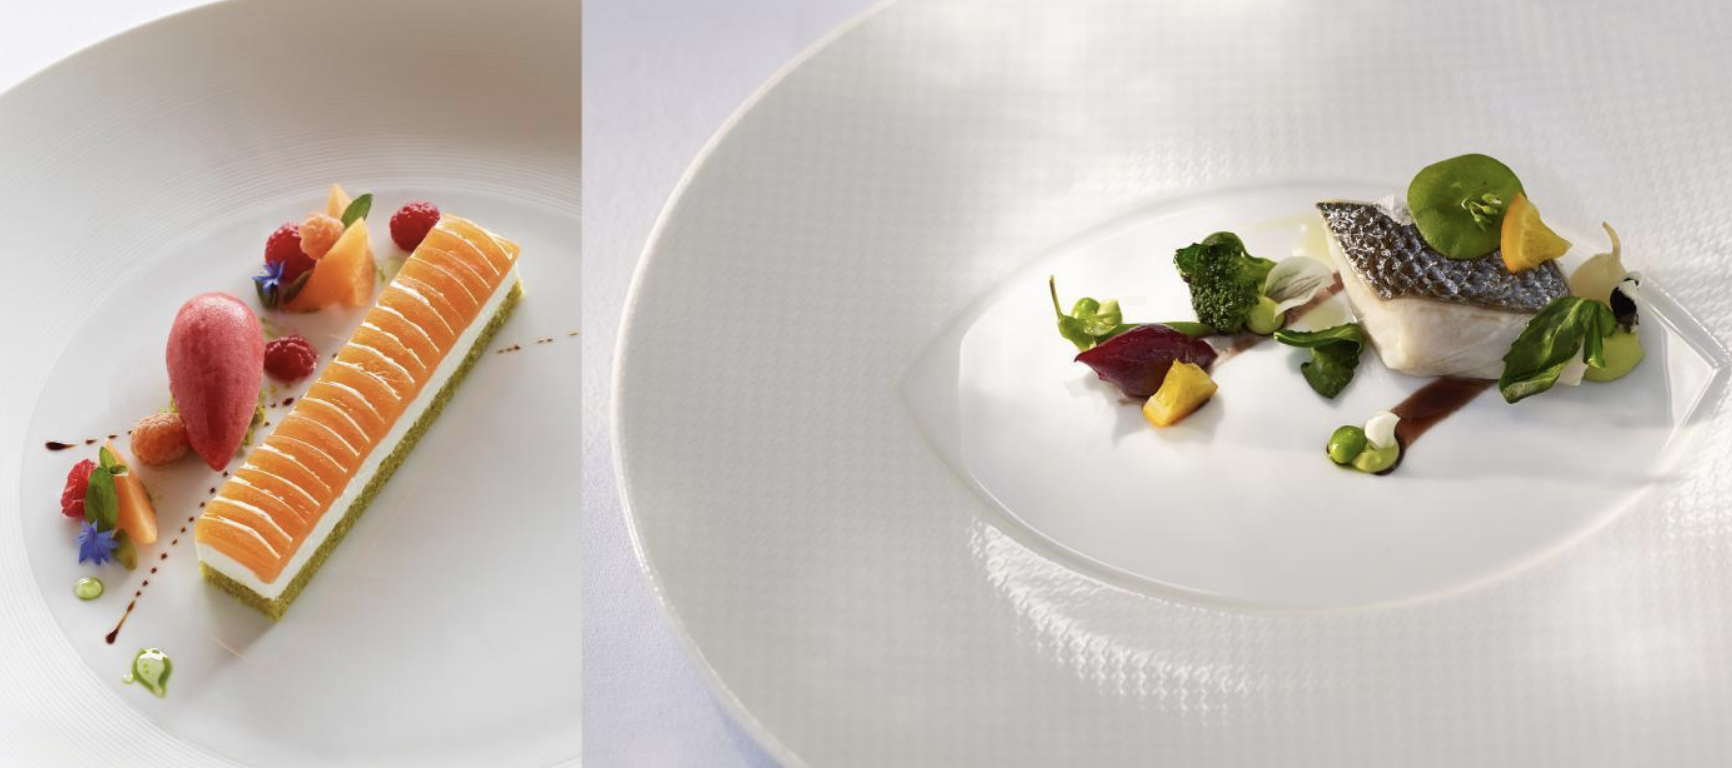 Smart-Alternative-Fuels-The-French-Laundry-Plated-Food-III.png